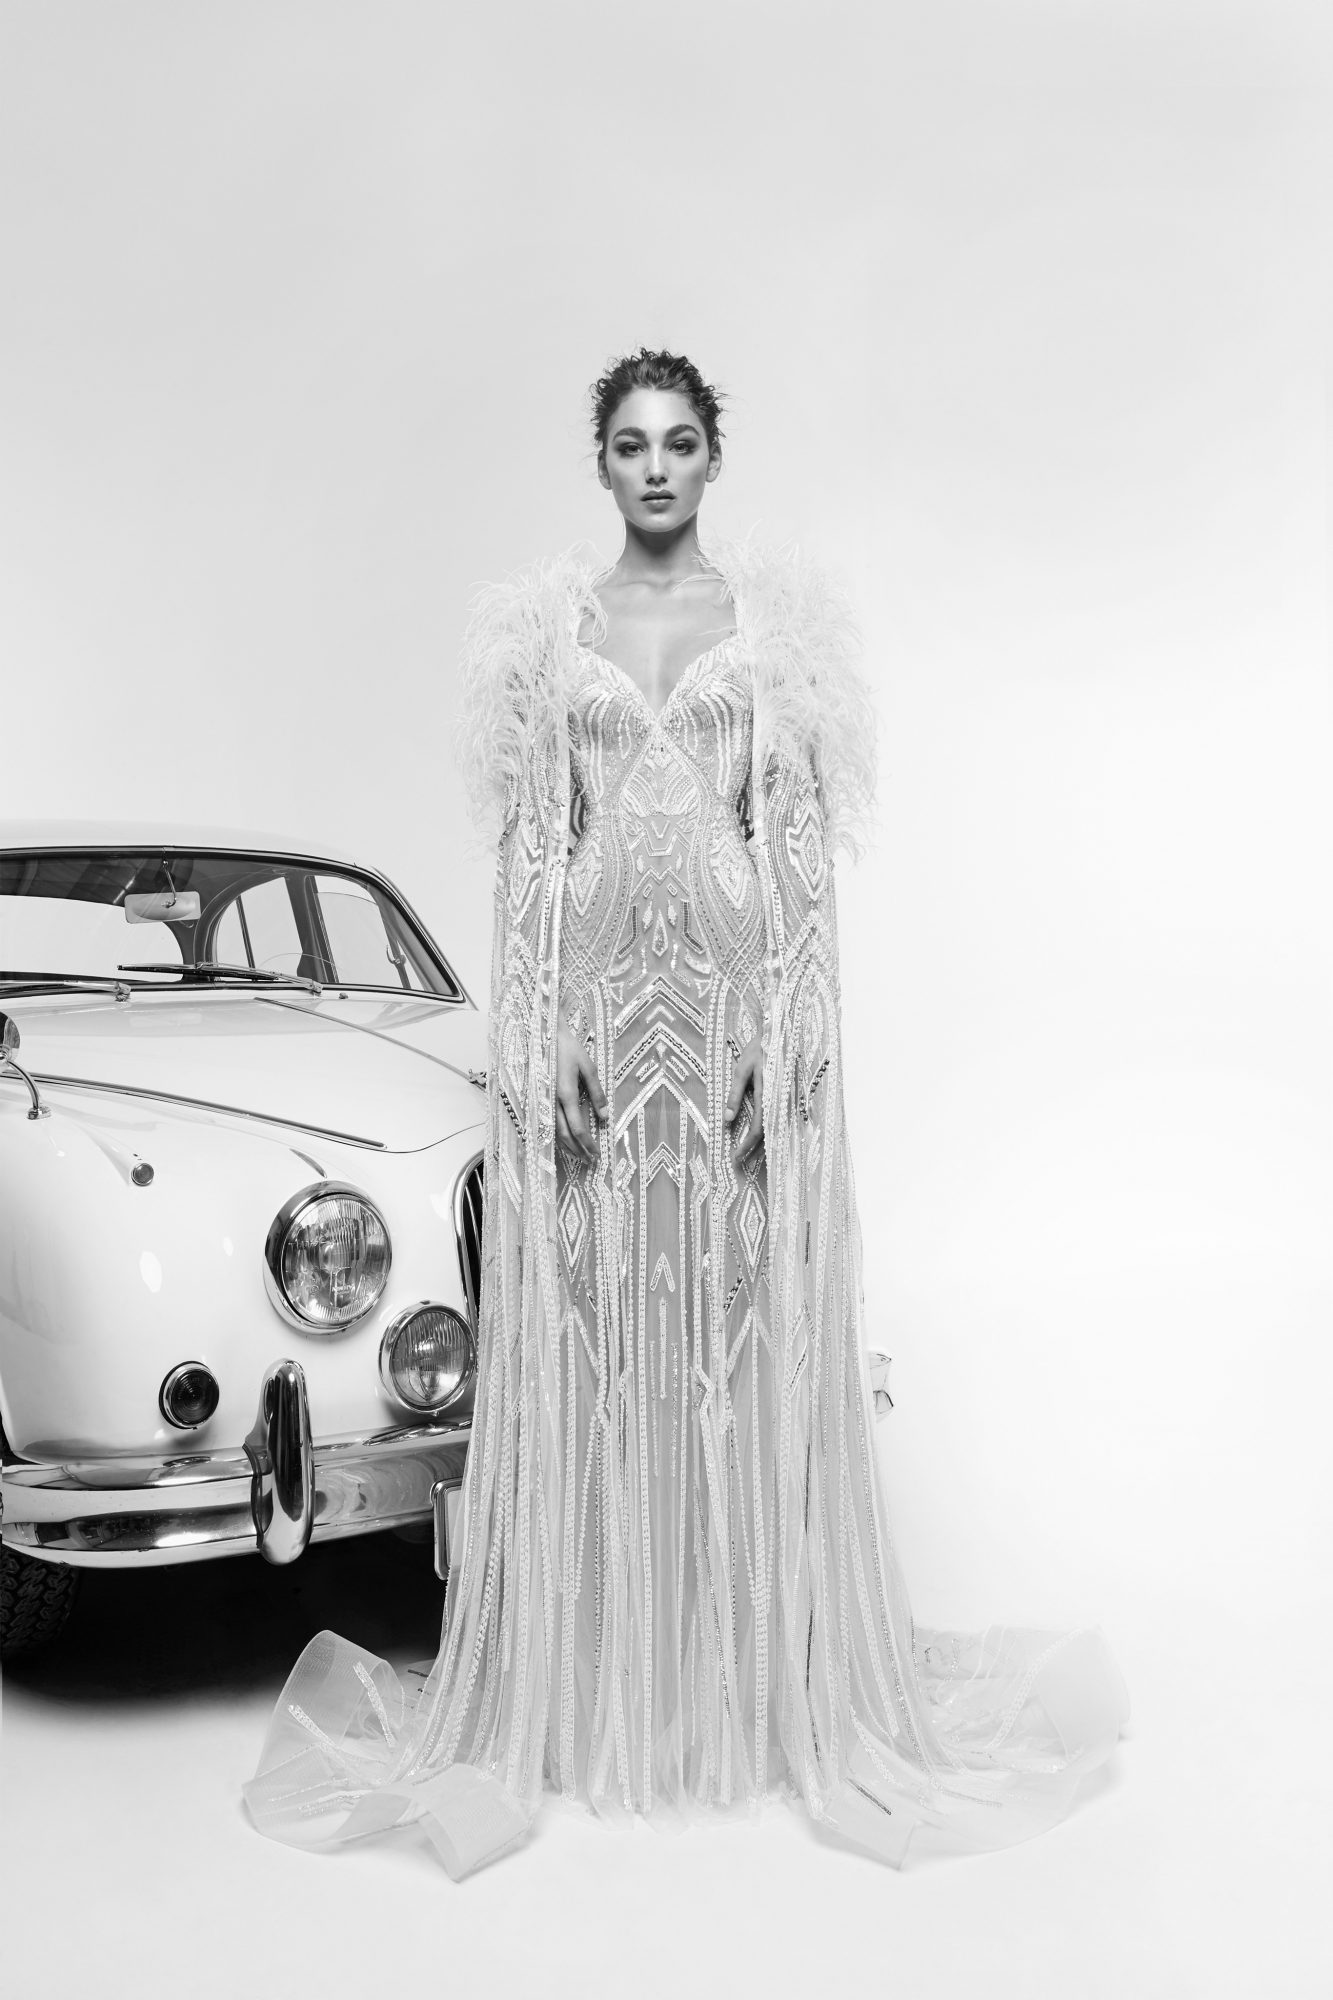 zuhair murad wedding dress spring 2019 mermaid with feathered cape